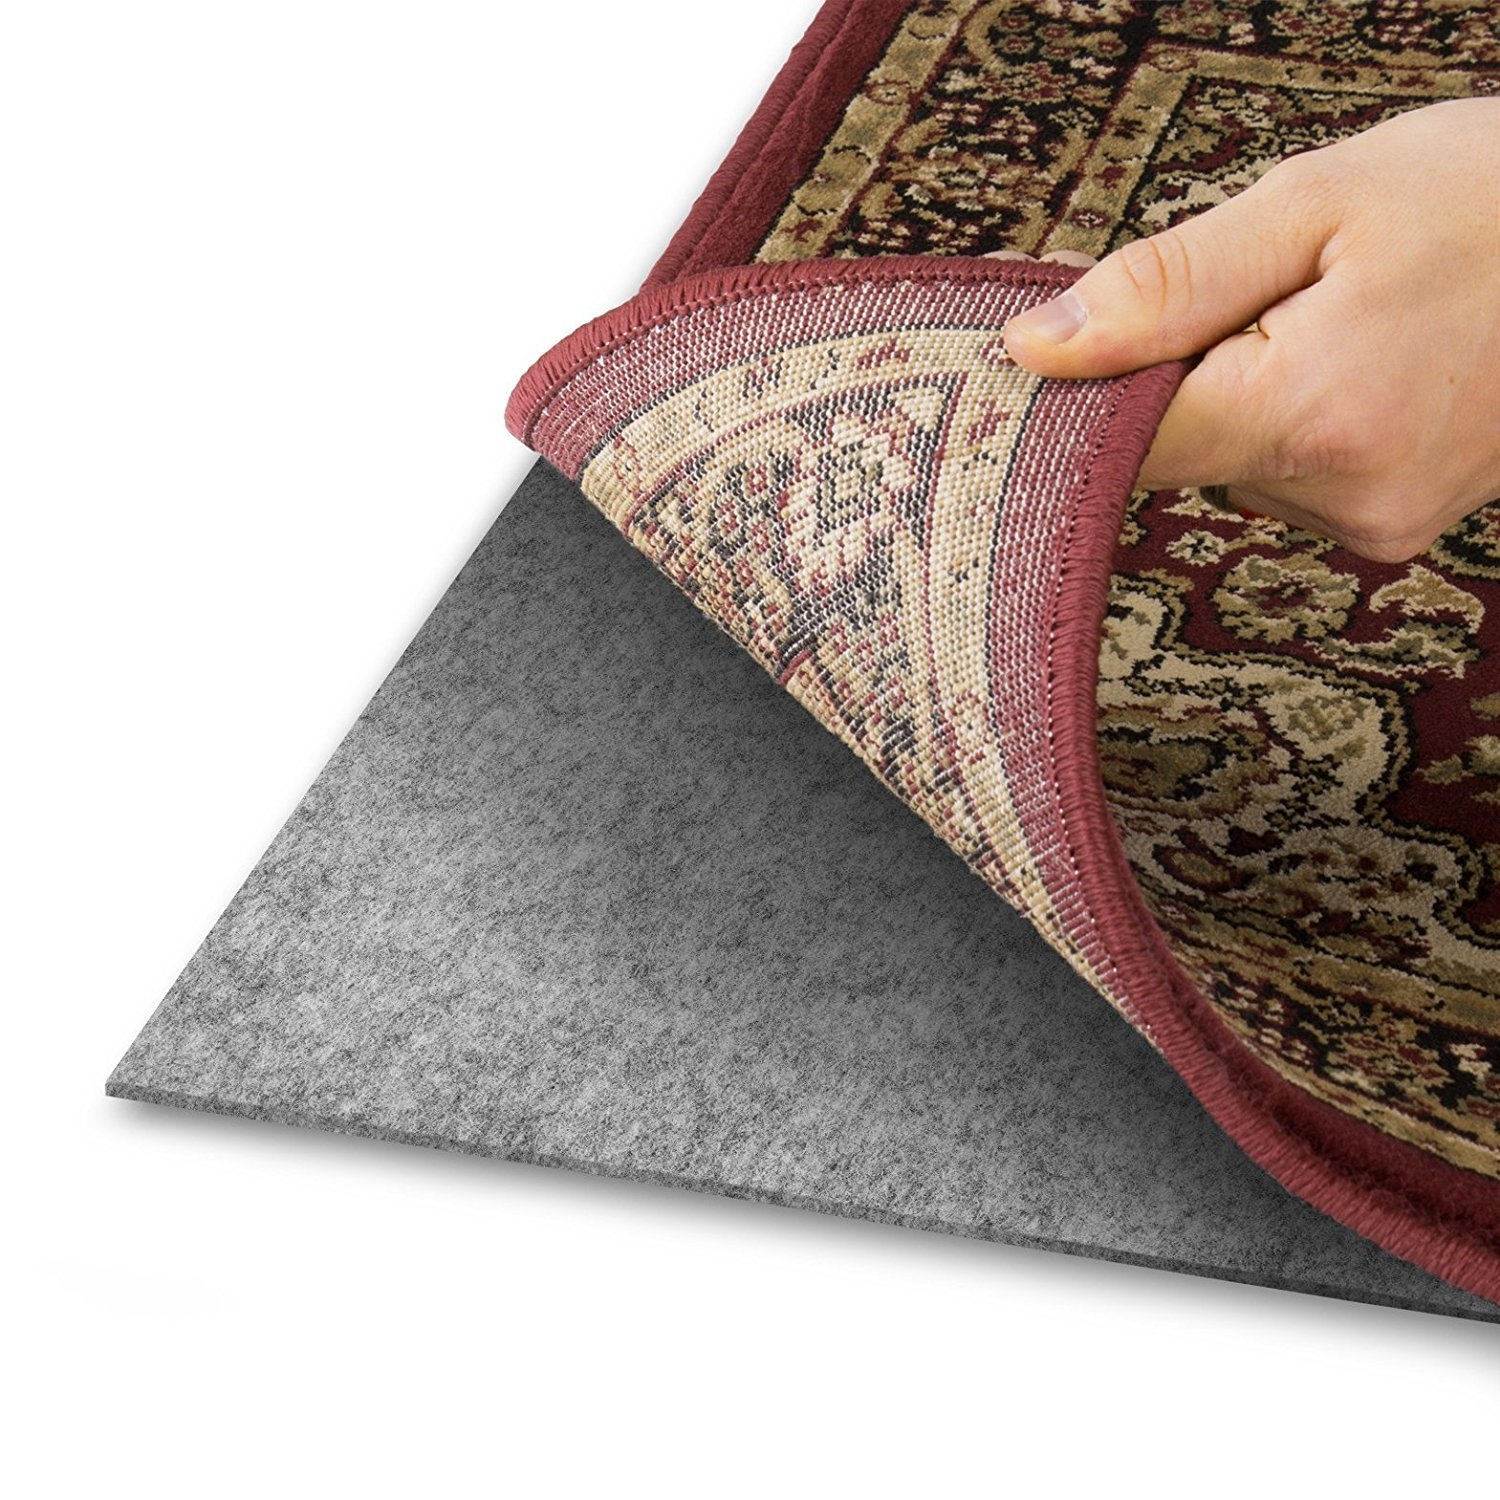 Shop Amazon Rug Pads With Non Slip Rugs (Image 13 of 15)